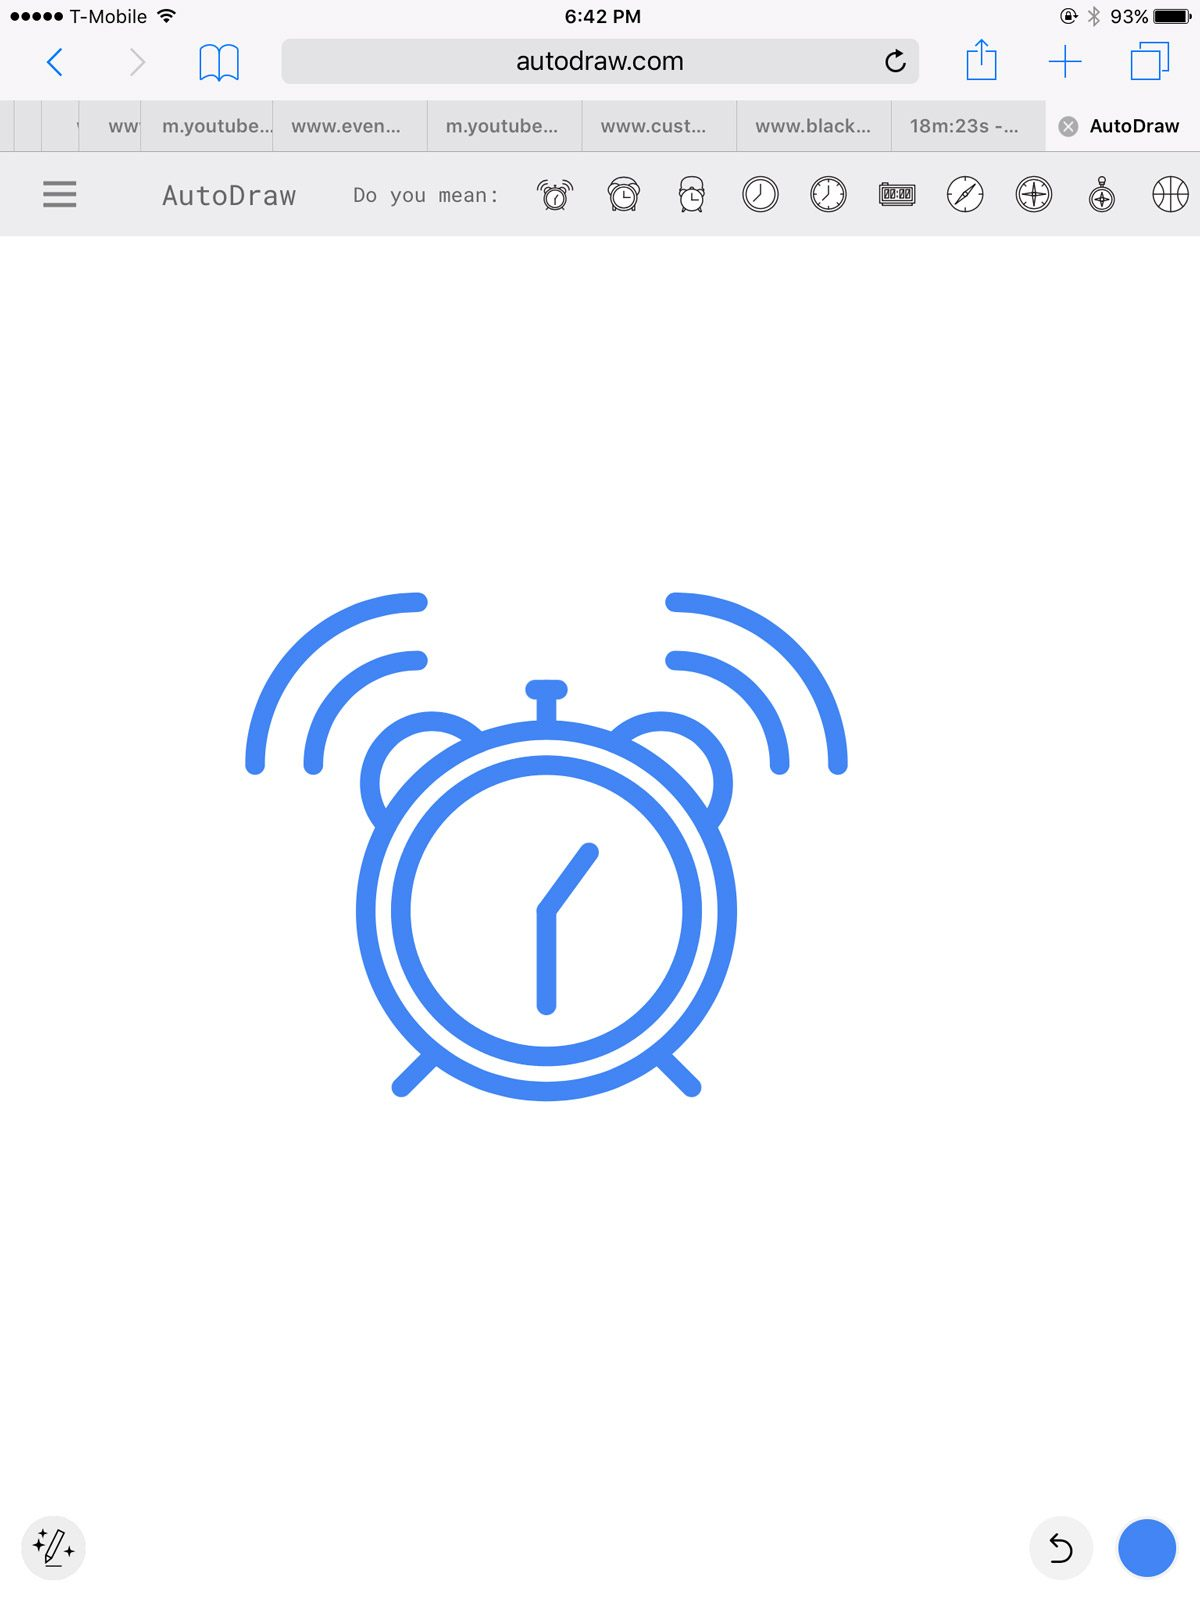 AutoDraw Suggestion of a clock